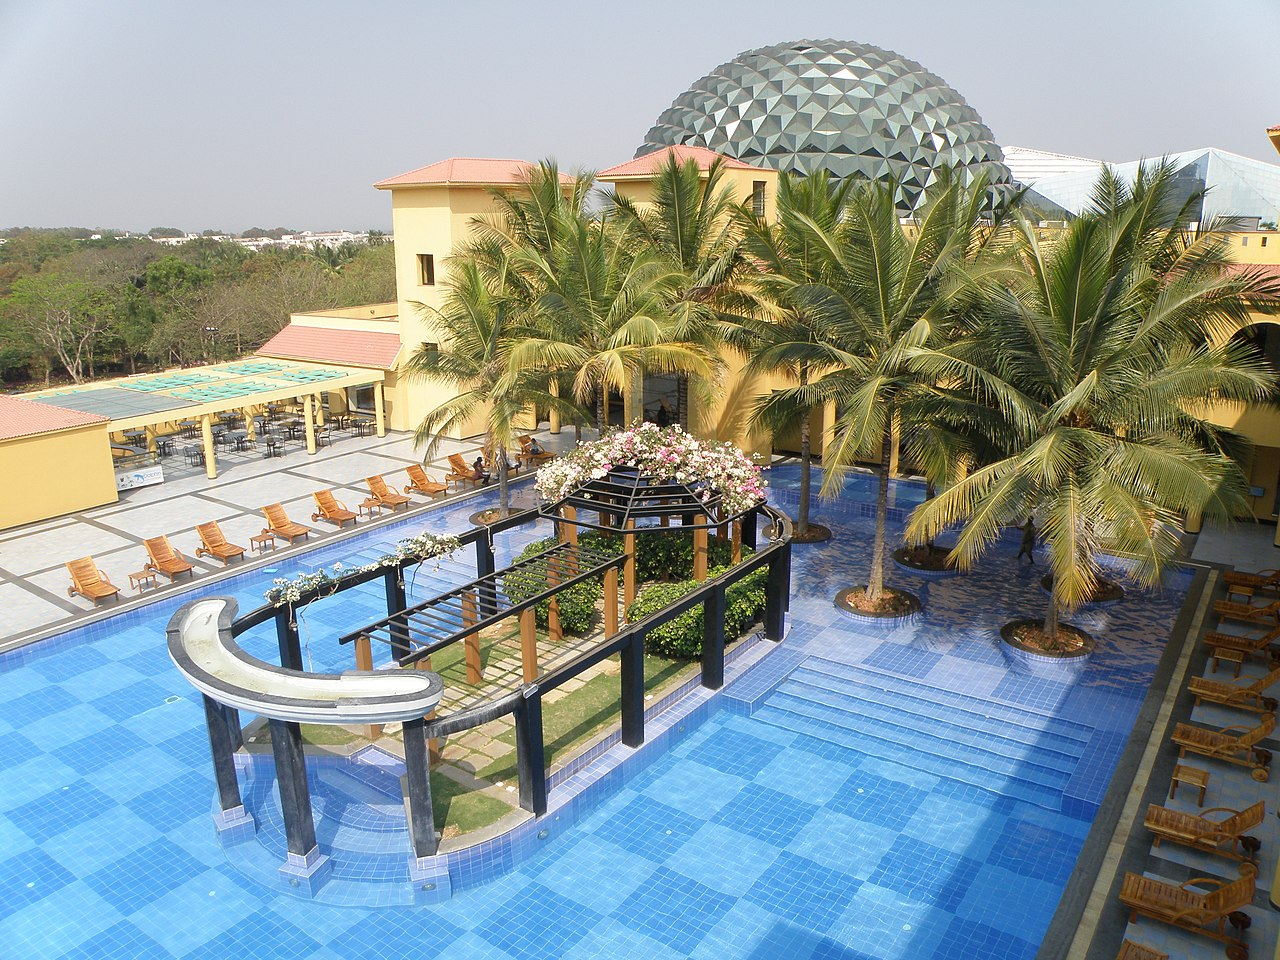 File Swimming Pool In Employee Care Centre Infosys Mysore 19 Jpg Wikimedia Commons